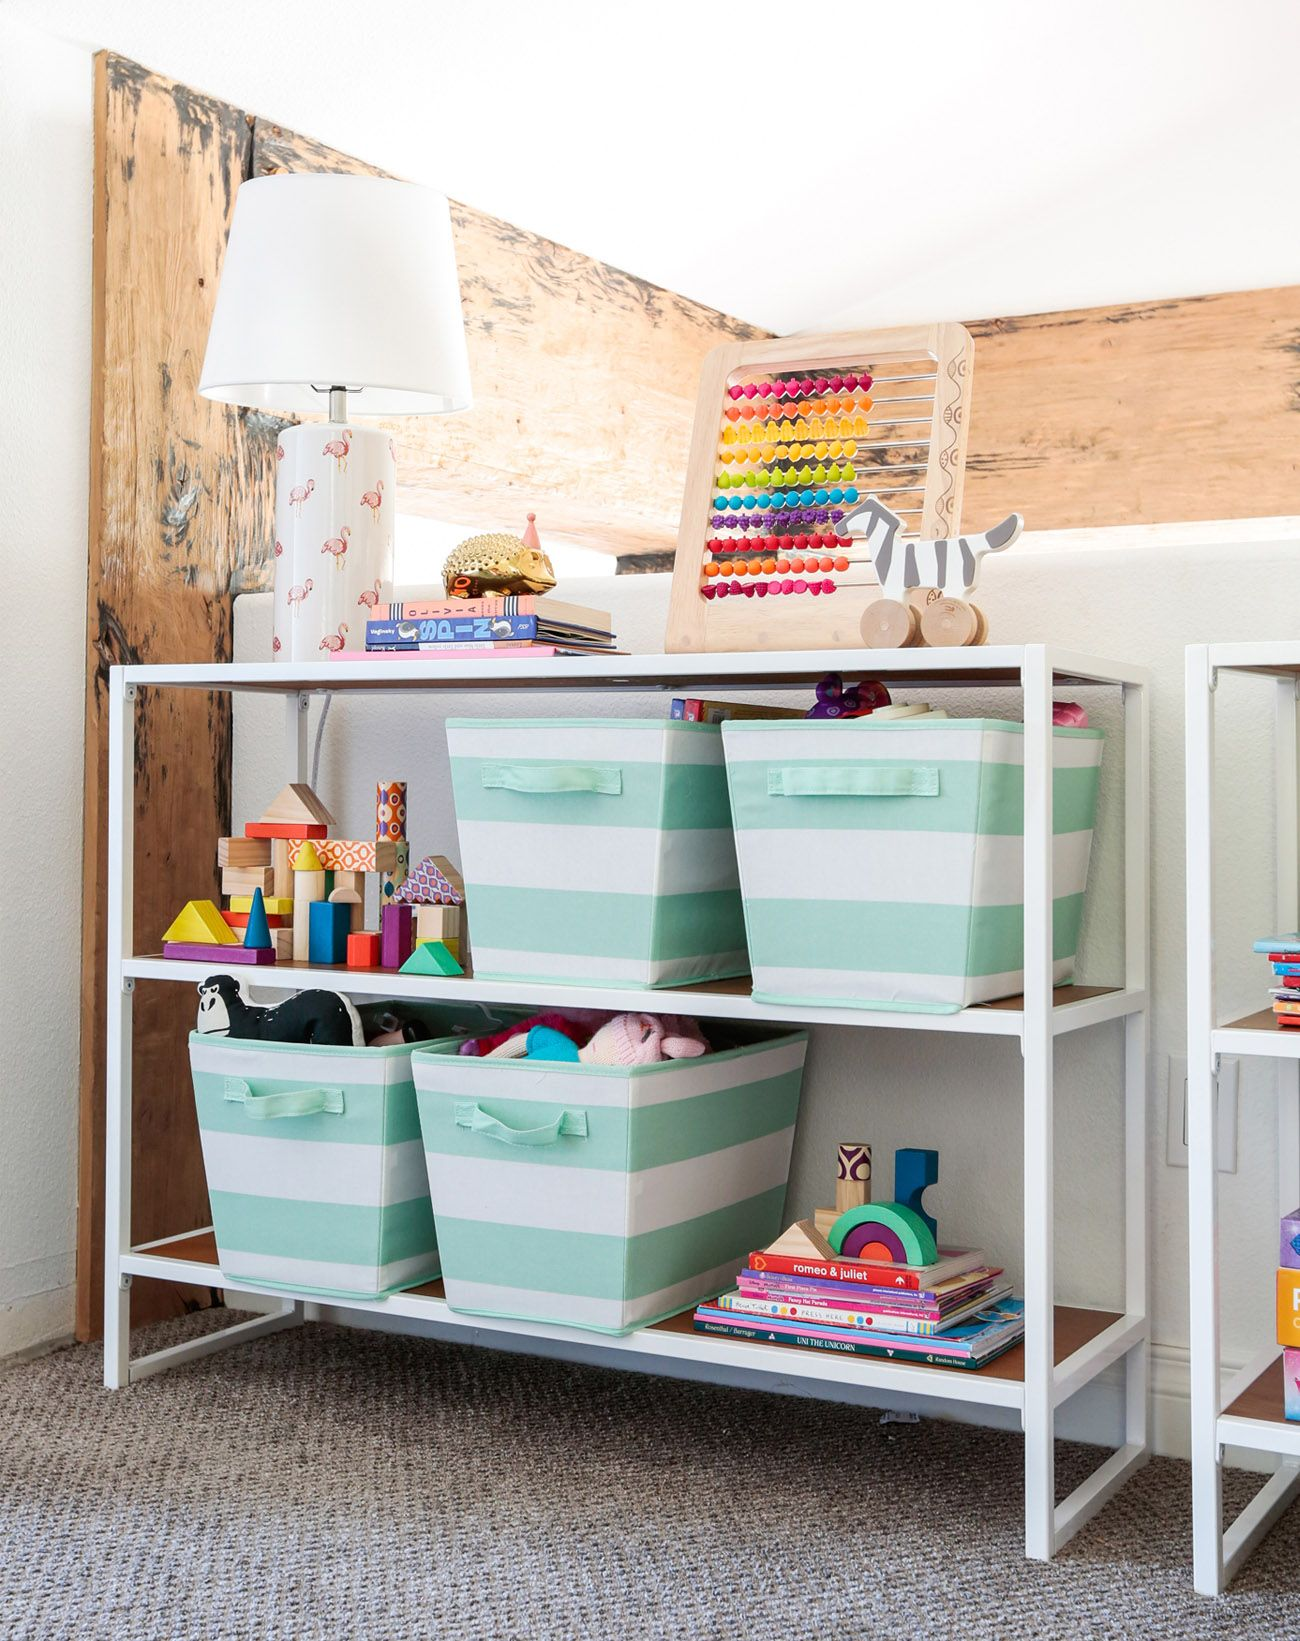 A Playroom With Target Pillowfort Emily Henderson Green Wedding Shoes Colorful Playroom Playroom Storage Pillow Fort